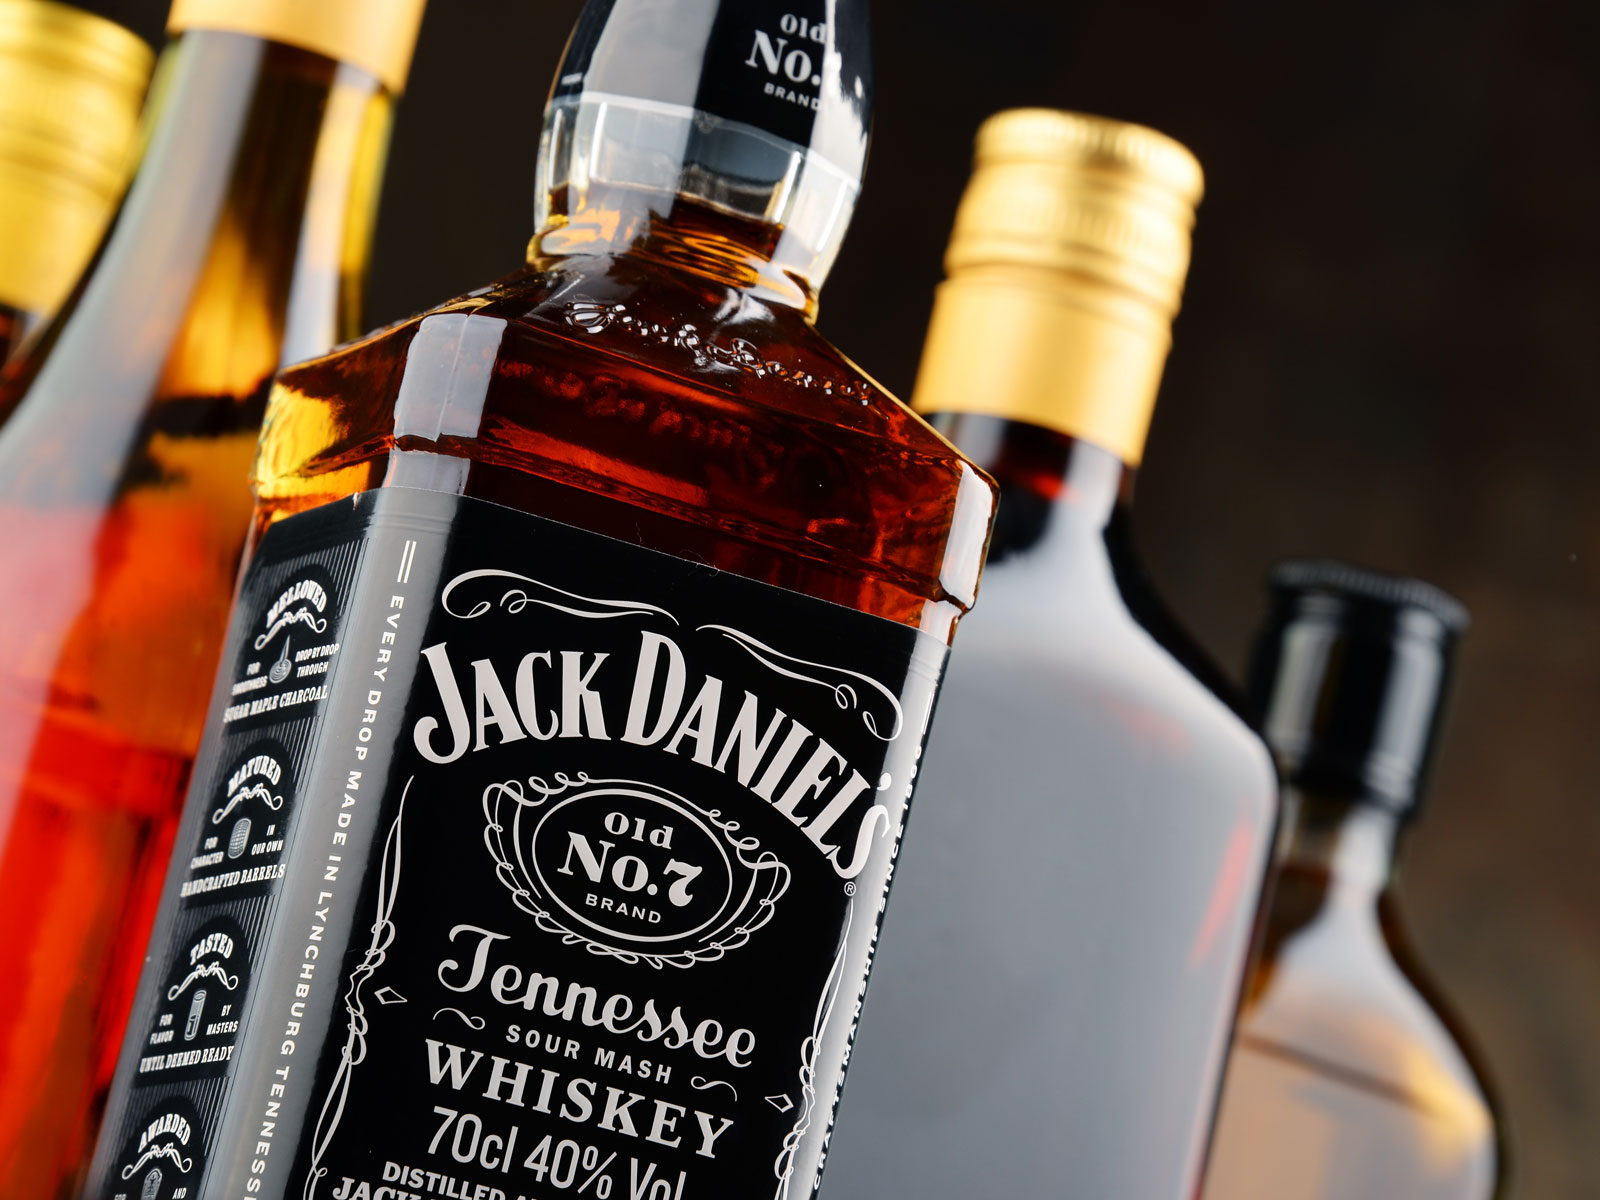 jack-daniels-prices-tariffs-FT-BLOG1219.jpg